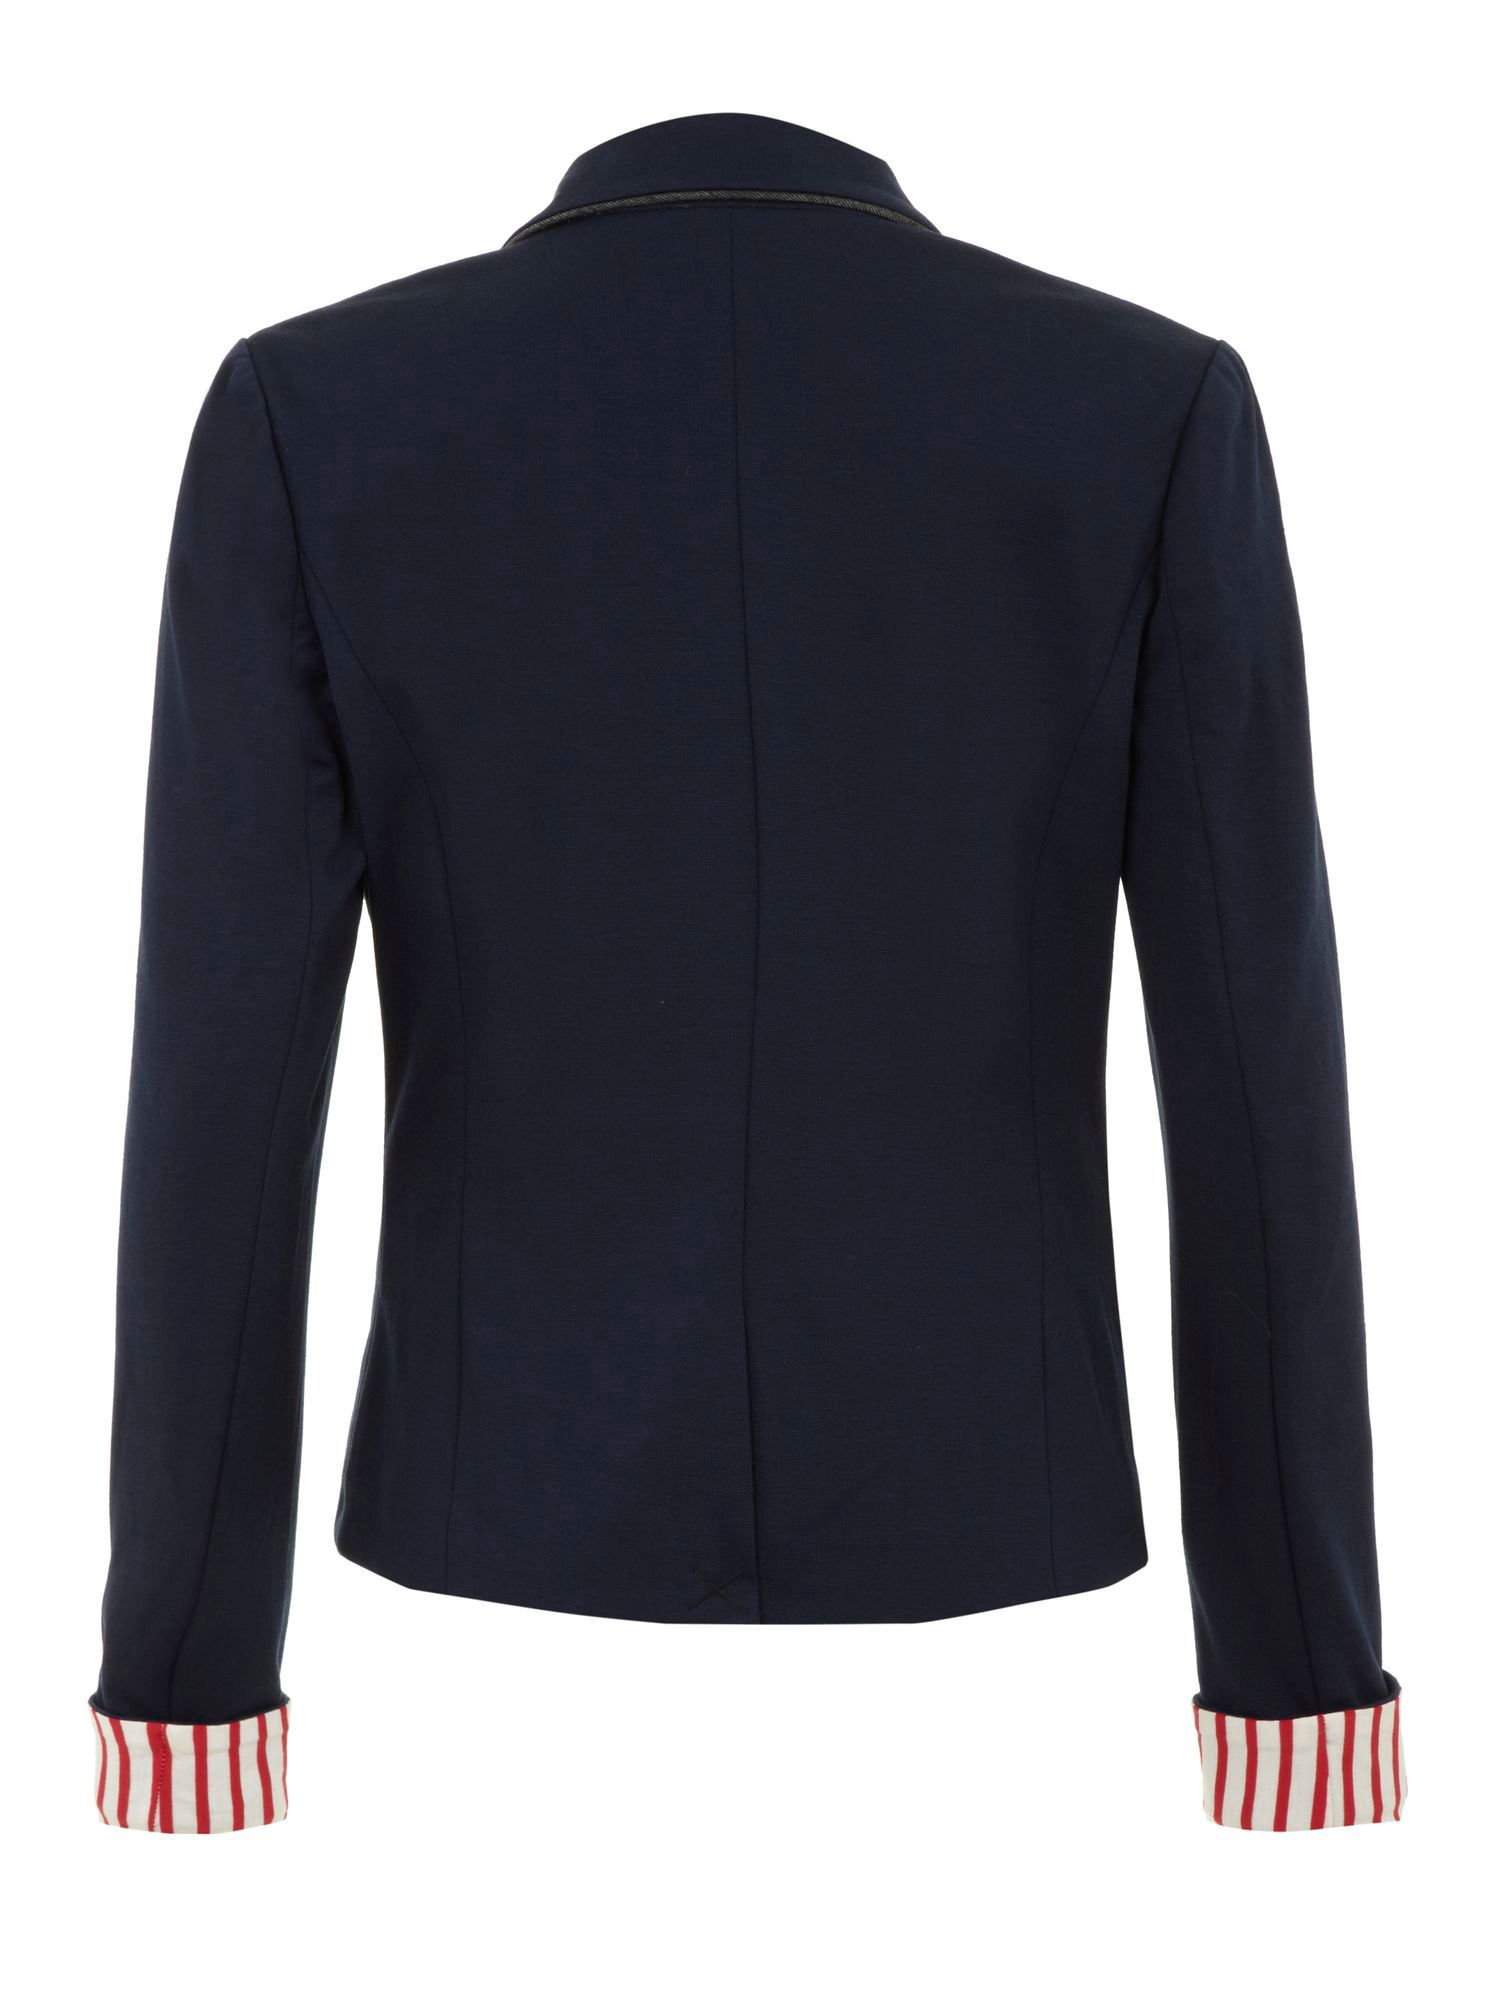 Nautical strip blazer